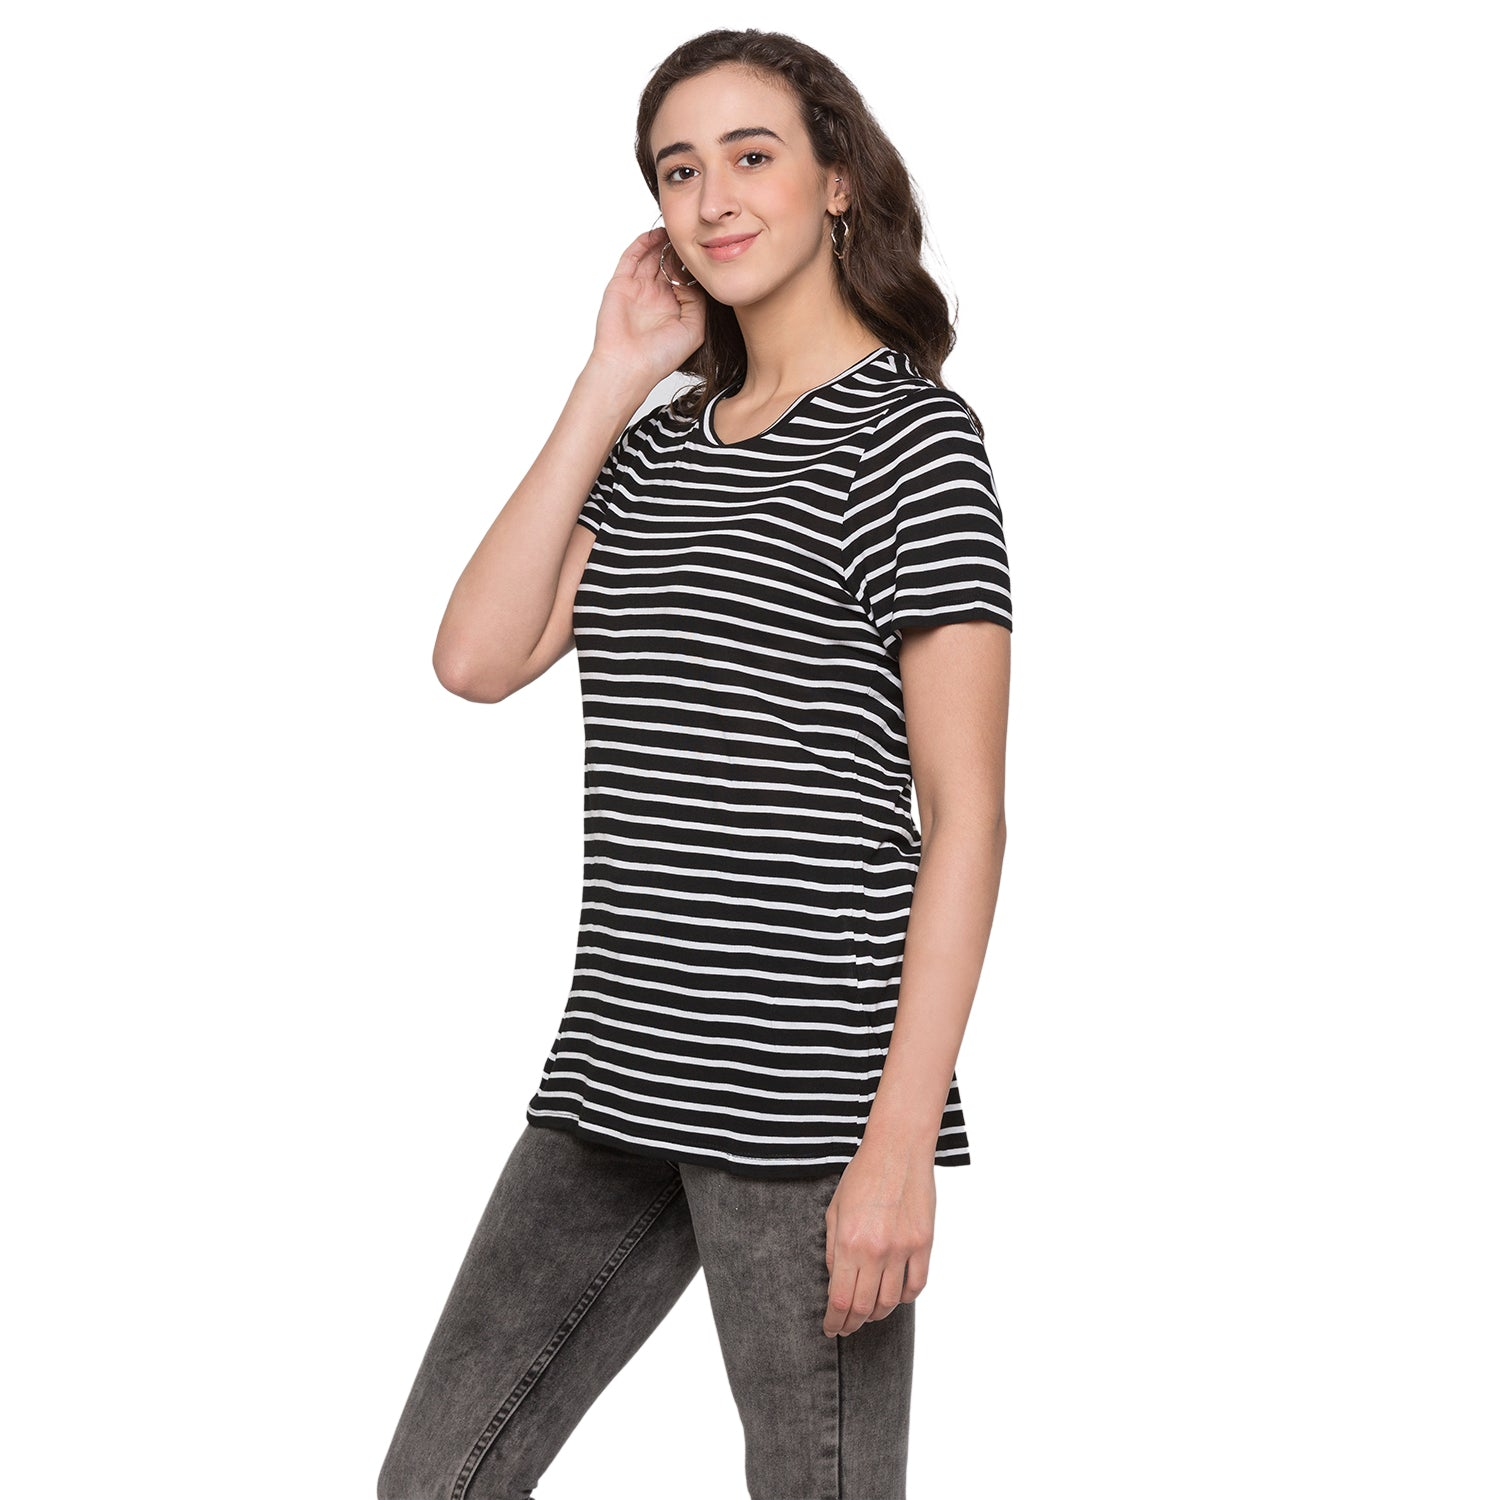 Globus Black & White Striped Top2